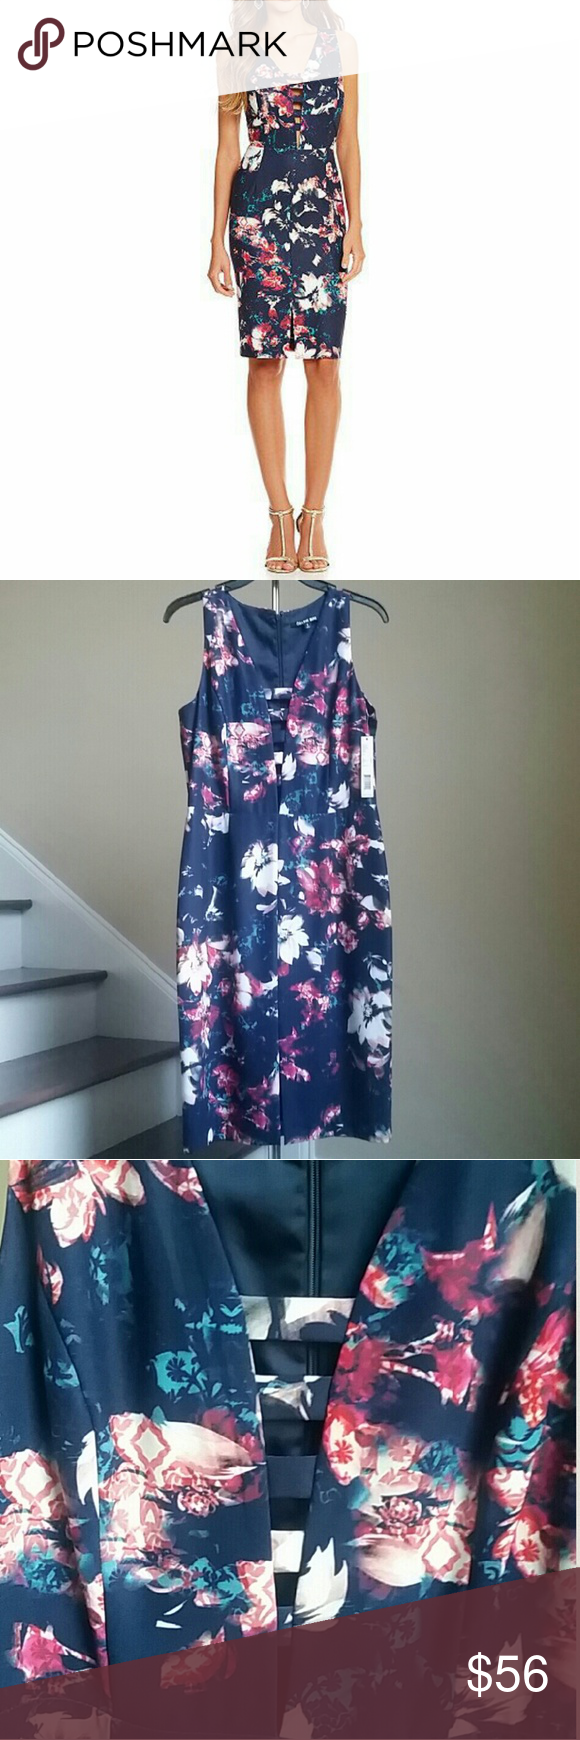 """🆕30% OFF BUNDLES 🎉 GIANNI BINI DRESS Stunning floral print dress from Gianni Bini. Features front cutout design, front slit, sleeveless, lined, concealed back zipper. Shell 95% Polyester, 5% Spandex. Lining 97% Polyester, 3% Spandex. Approx.measurements: bust 36"""", waist 30"""", hips 40"""". Length shoulder to hem 40"""". Gianni Bini Dresses"""